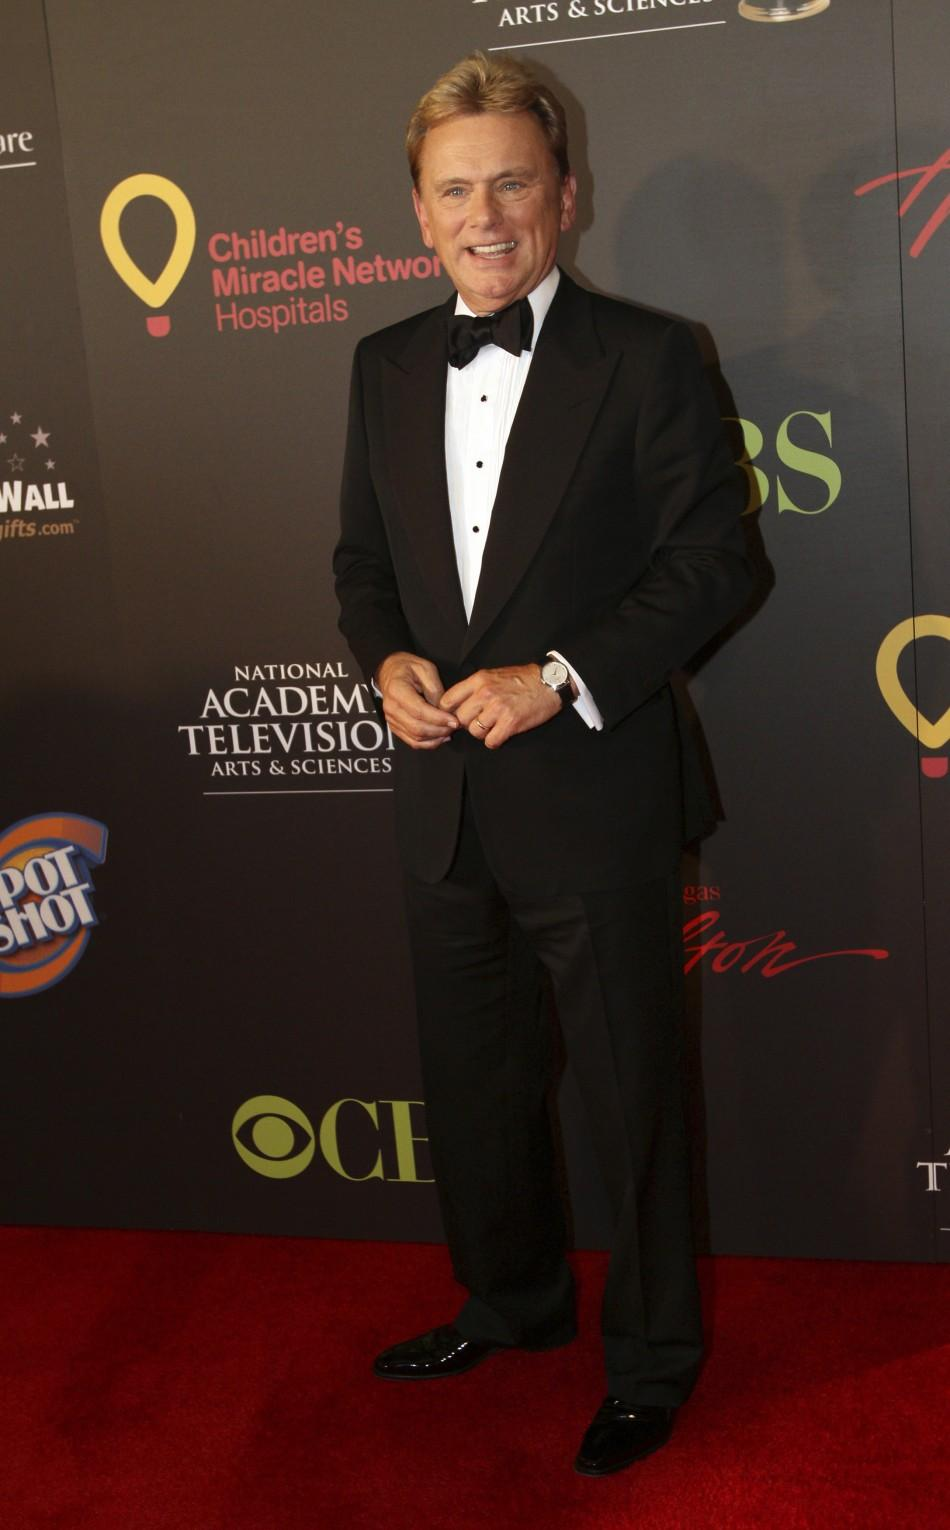 Pat Sajak arrives at the 38th Annual Daytime Entertainment Emmy Awards at the Las Vegas Hilton in Las Vegas